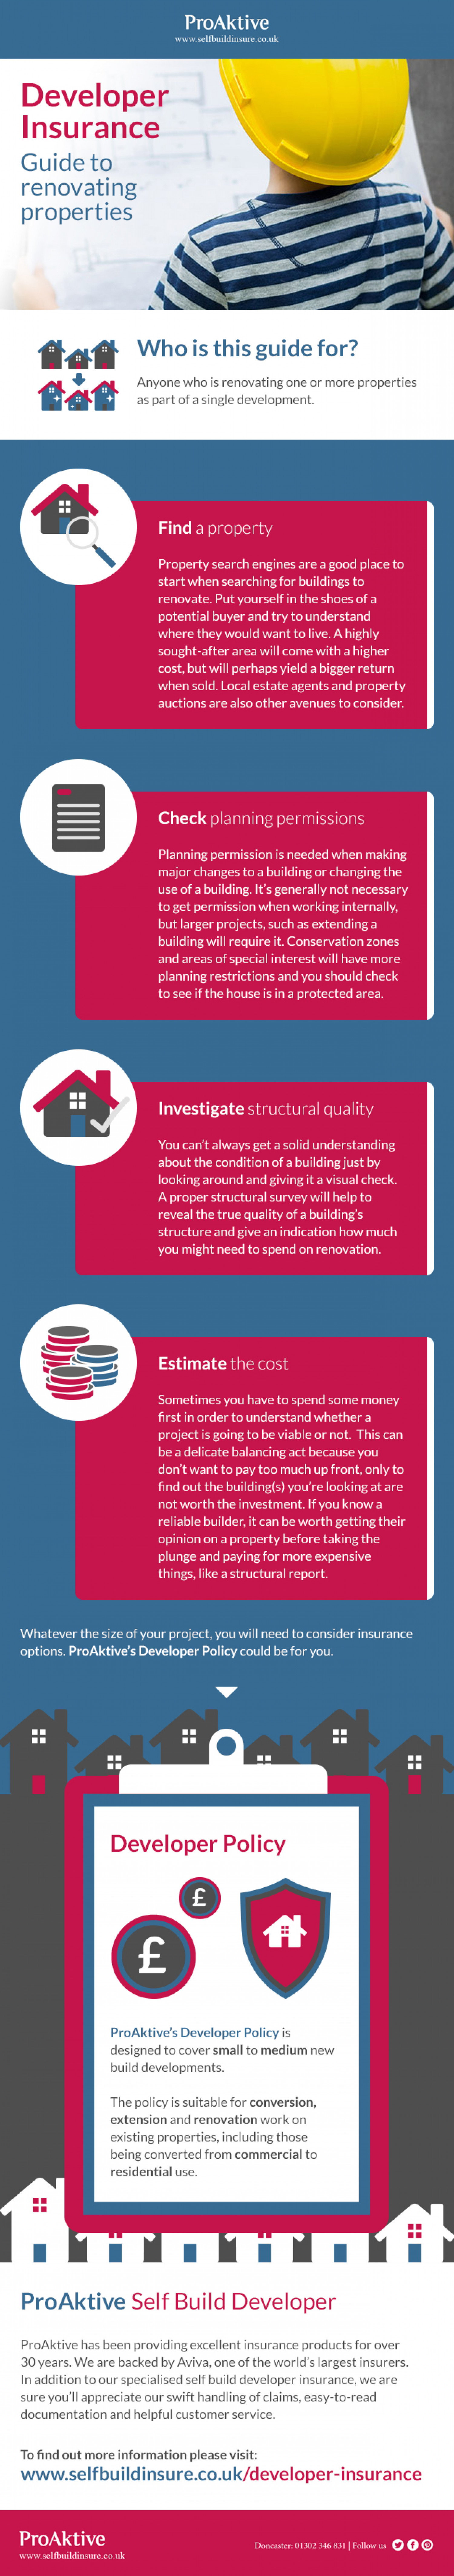 Developer Insurance: Guide to Renovating Properties Infographic